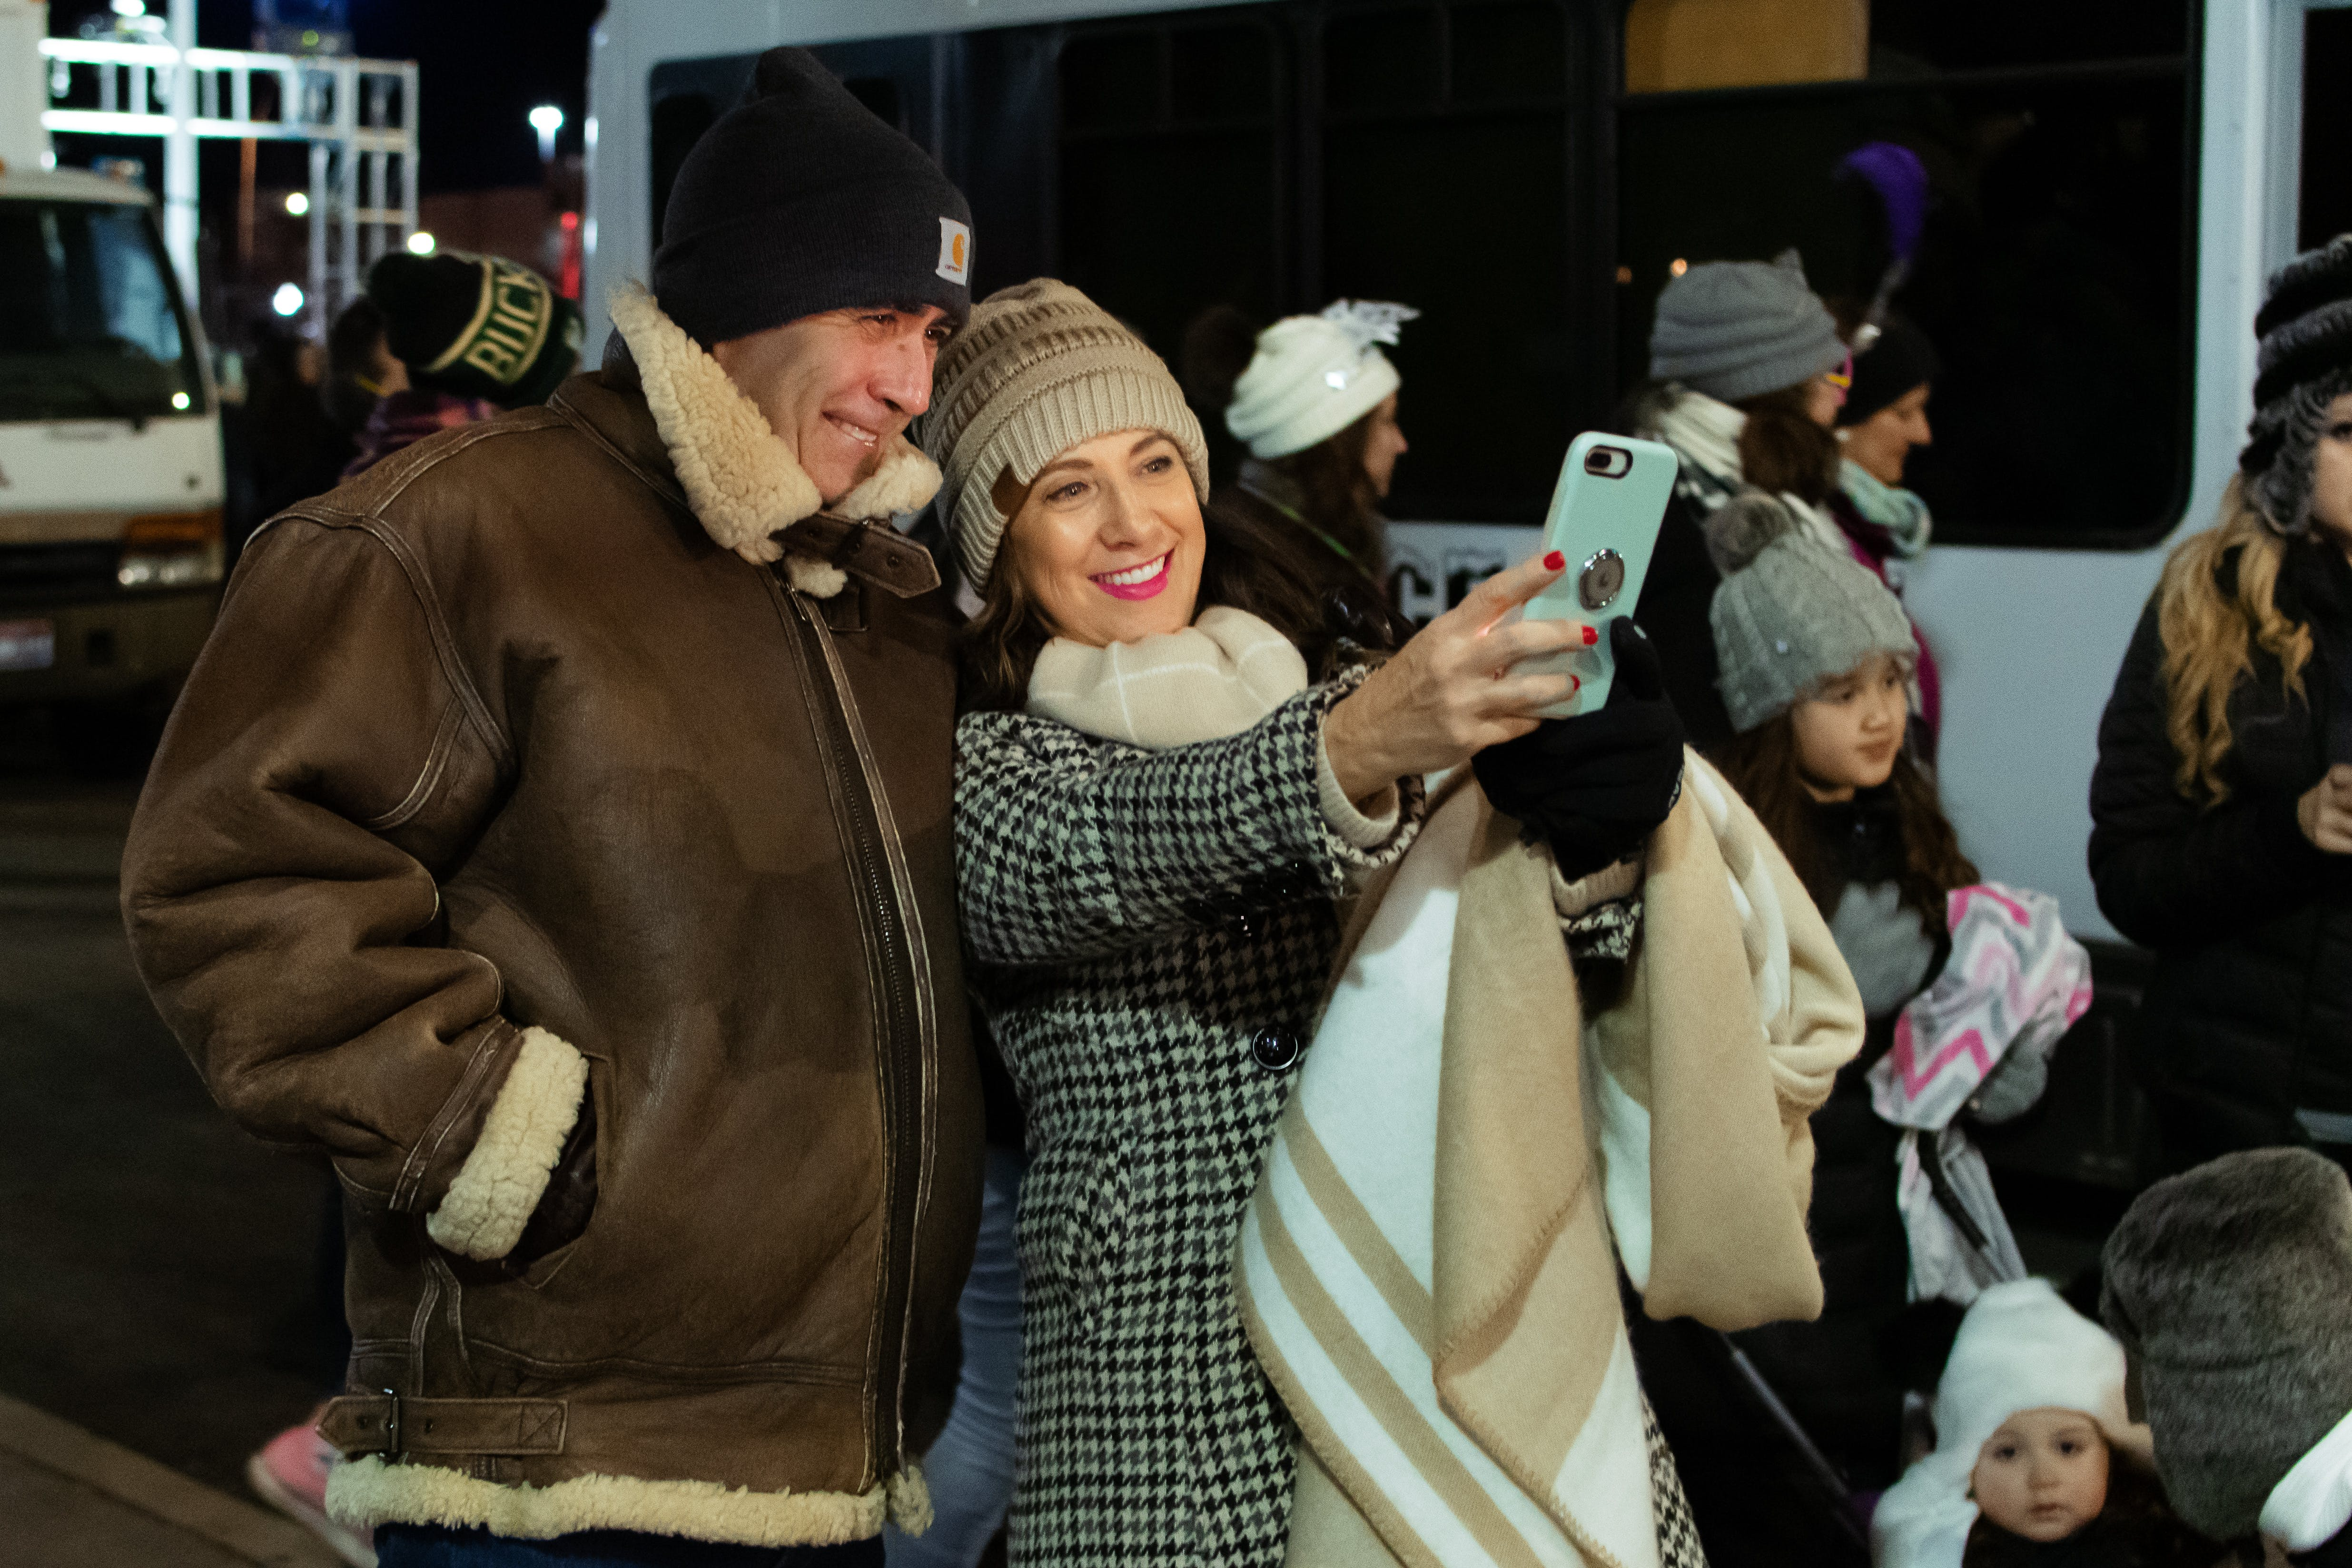 Selective Focus Photography of Man and Woman Posing for Selfie